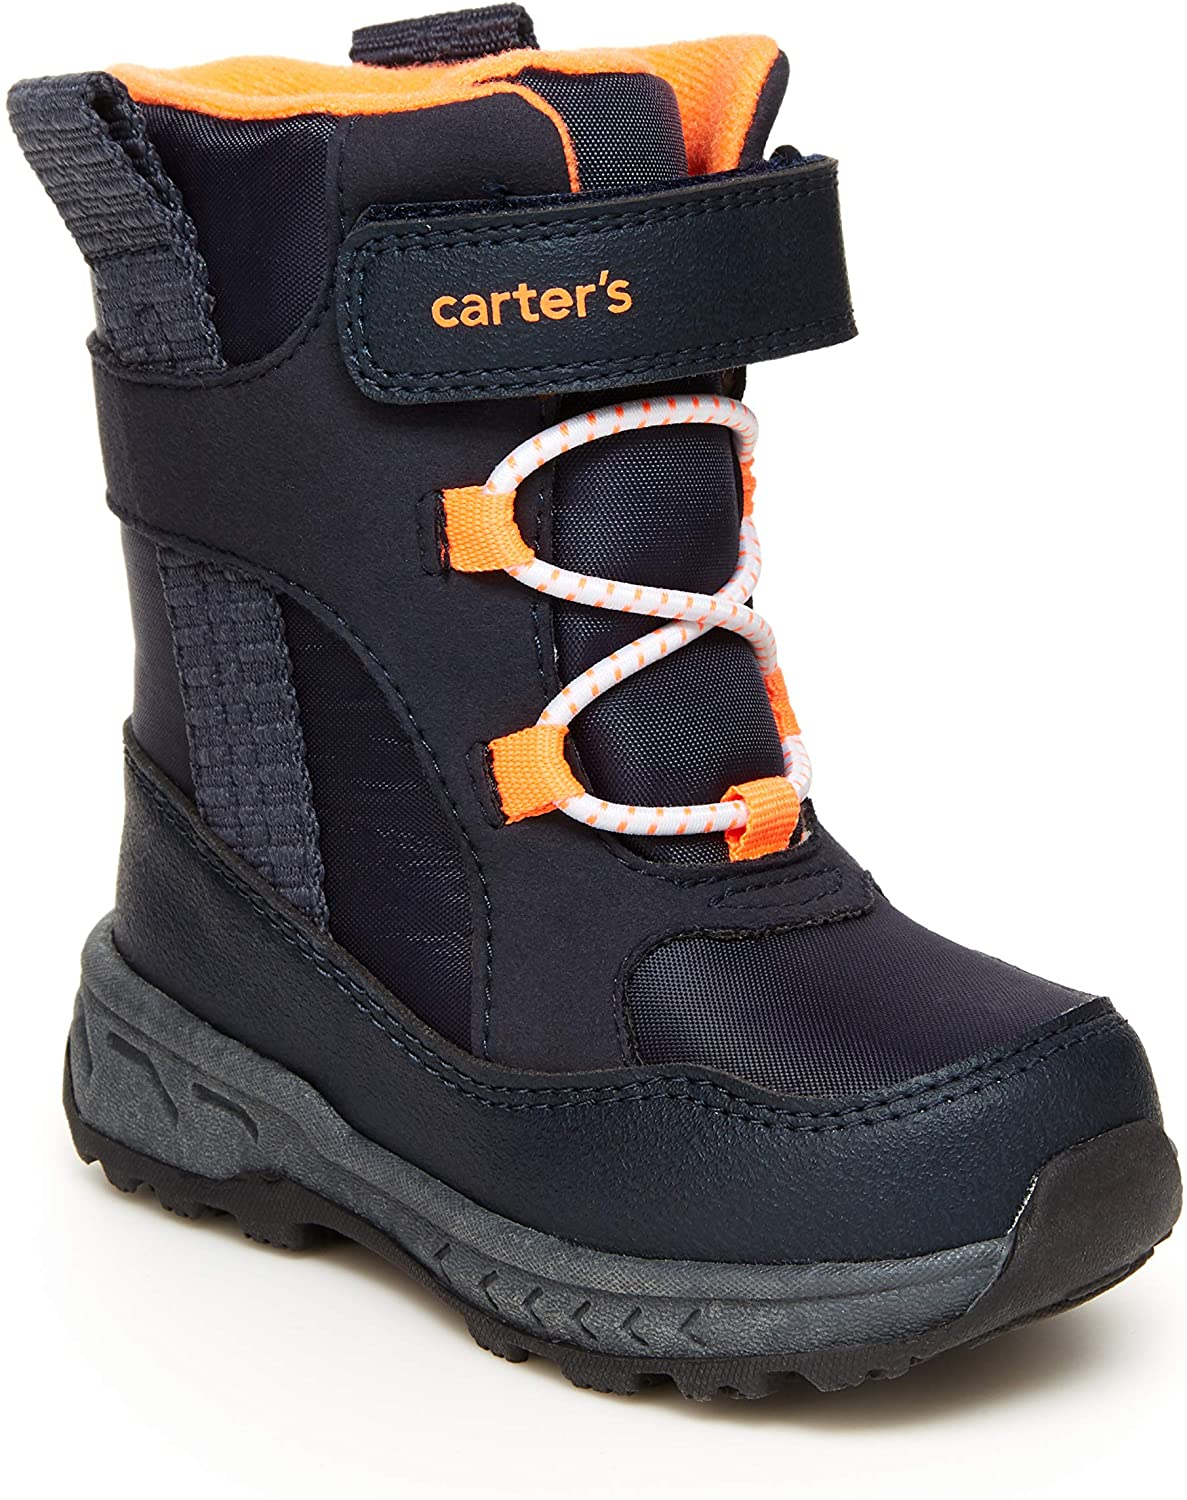 Carters Kids Keilor Snow Boot